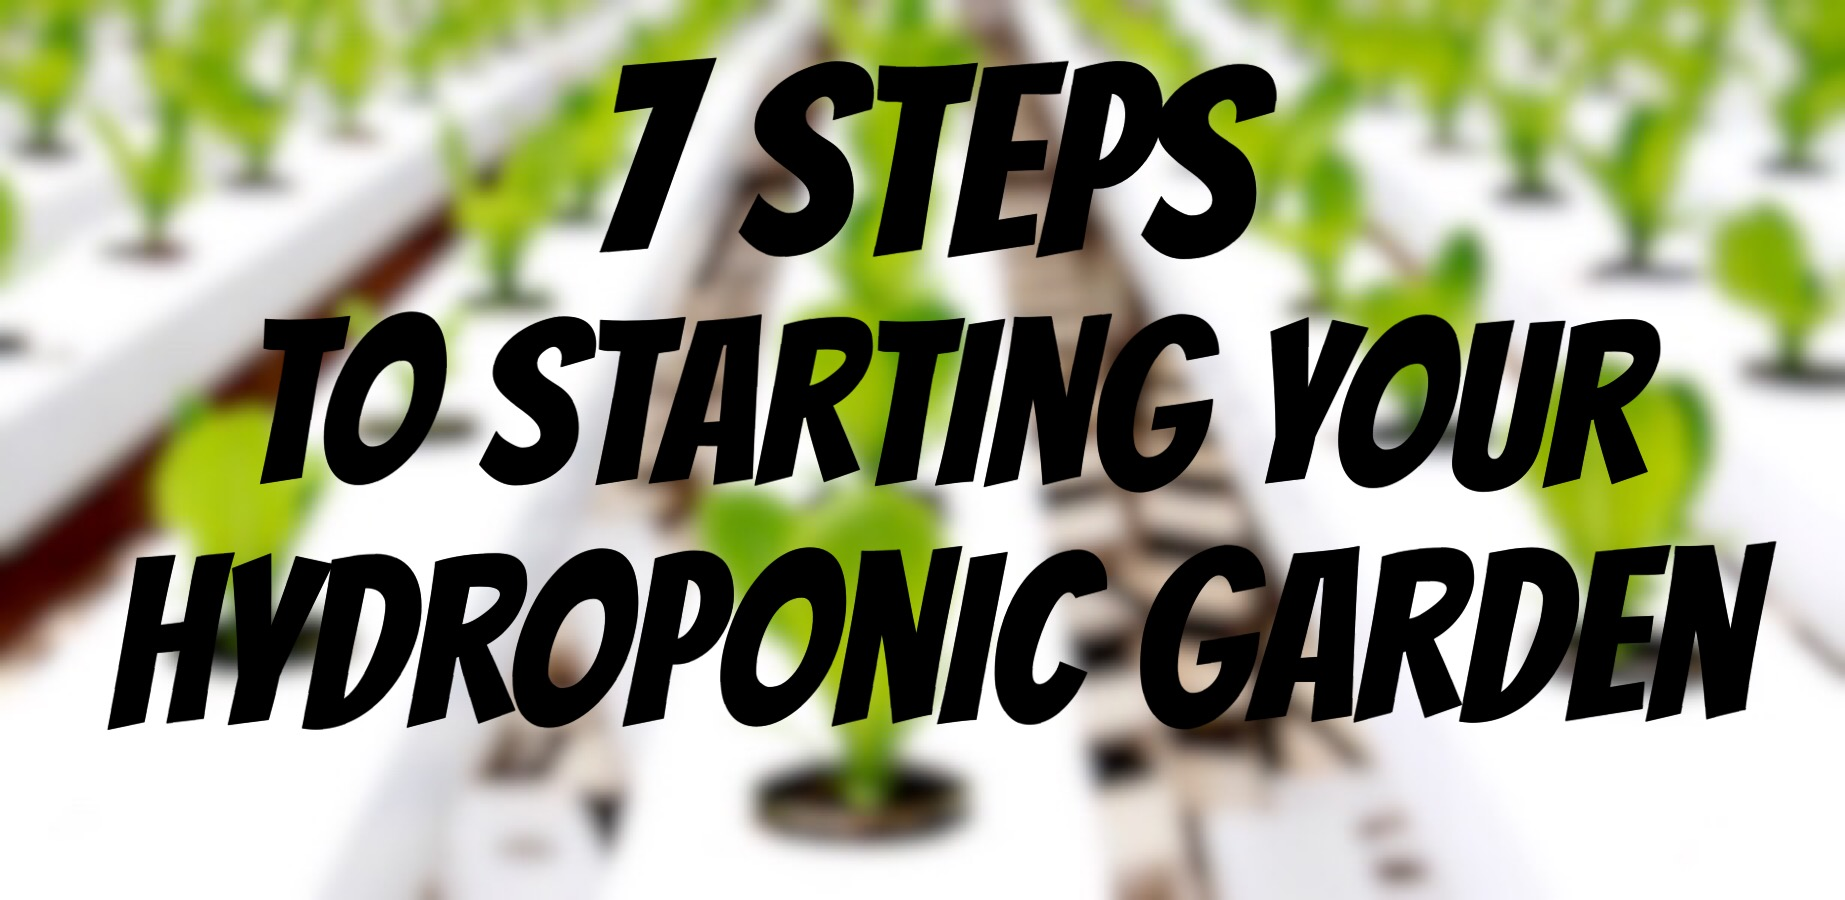 How To Start A Hydroponic Garden In 7 Steps | NoSoilSolutions